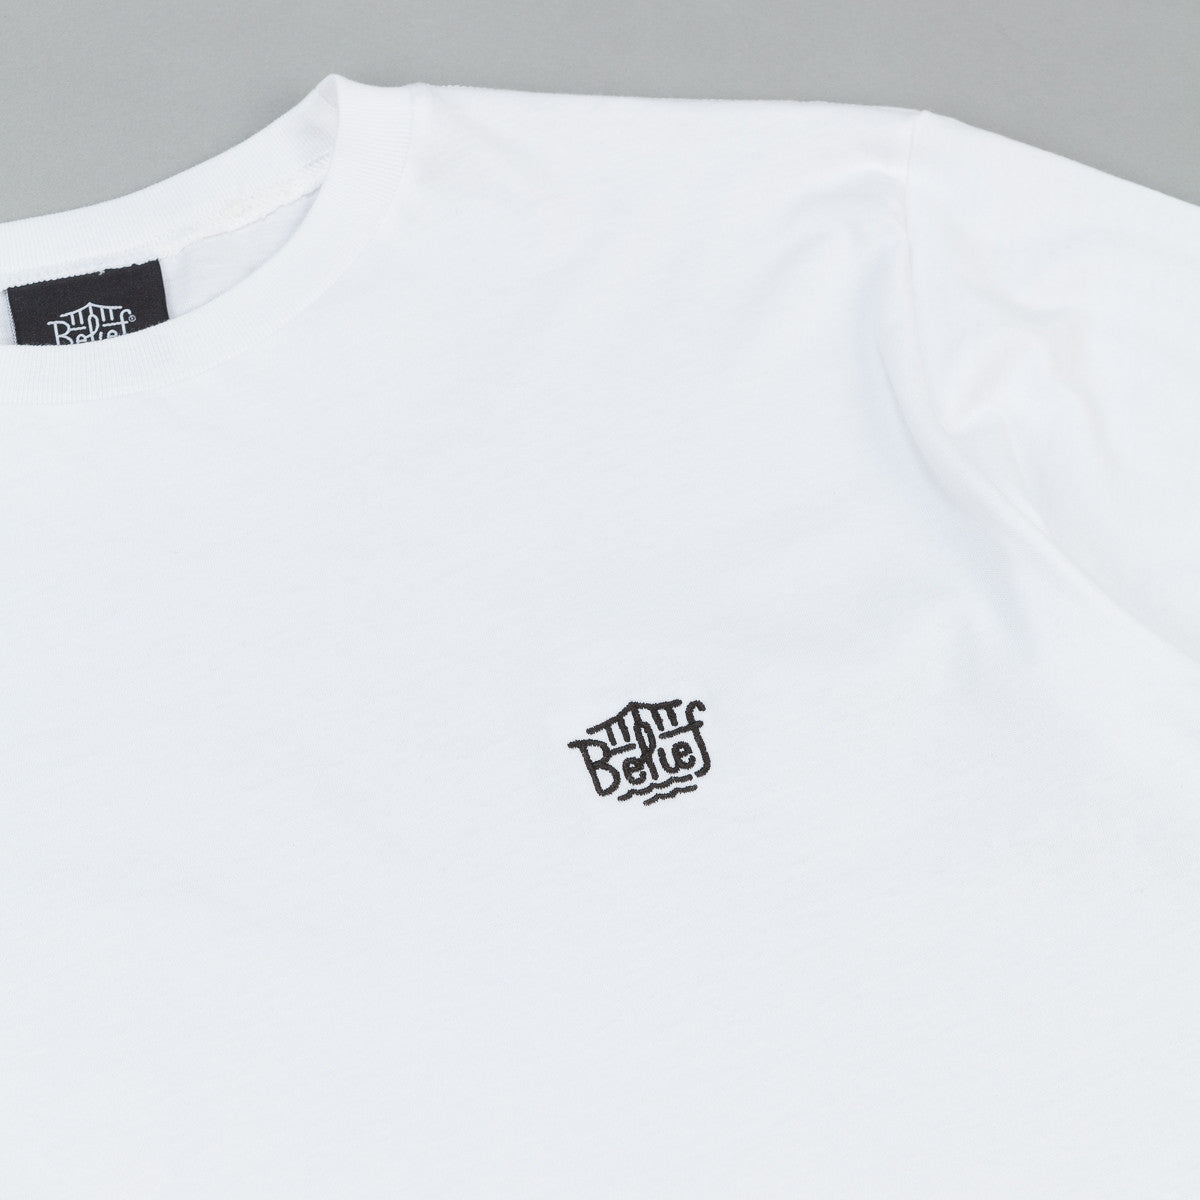 Belief Triboro Scoop T-Shirt - White